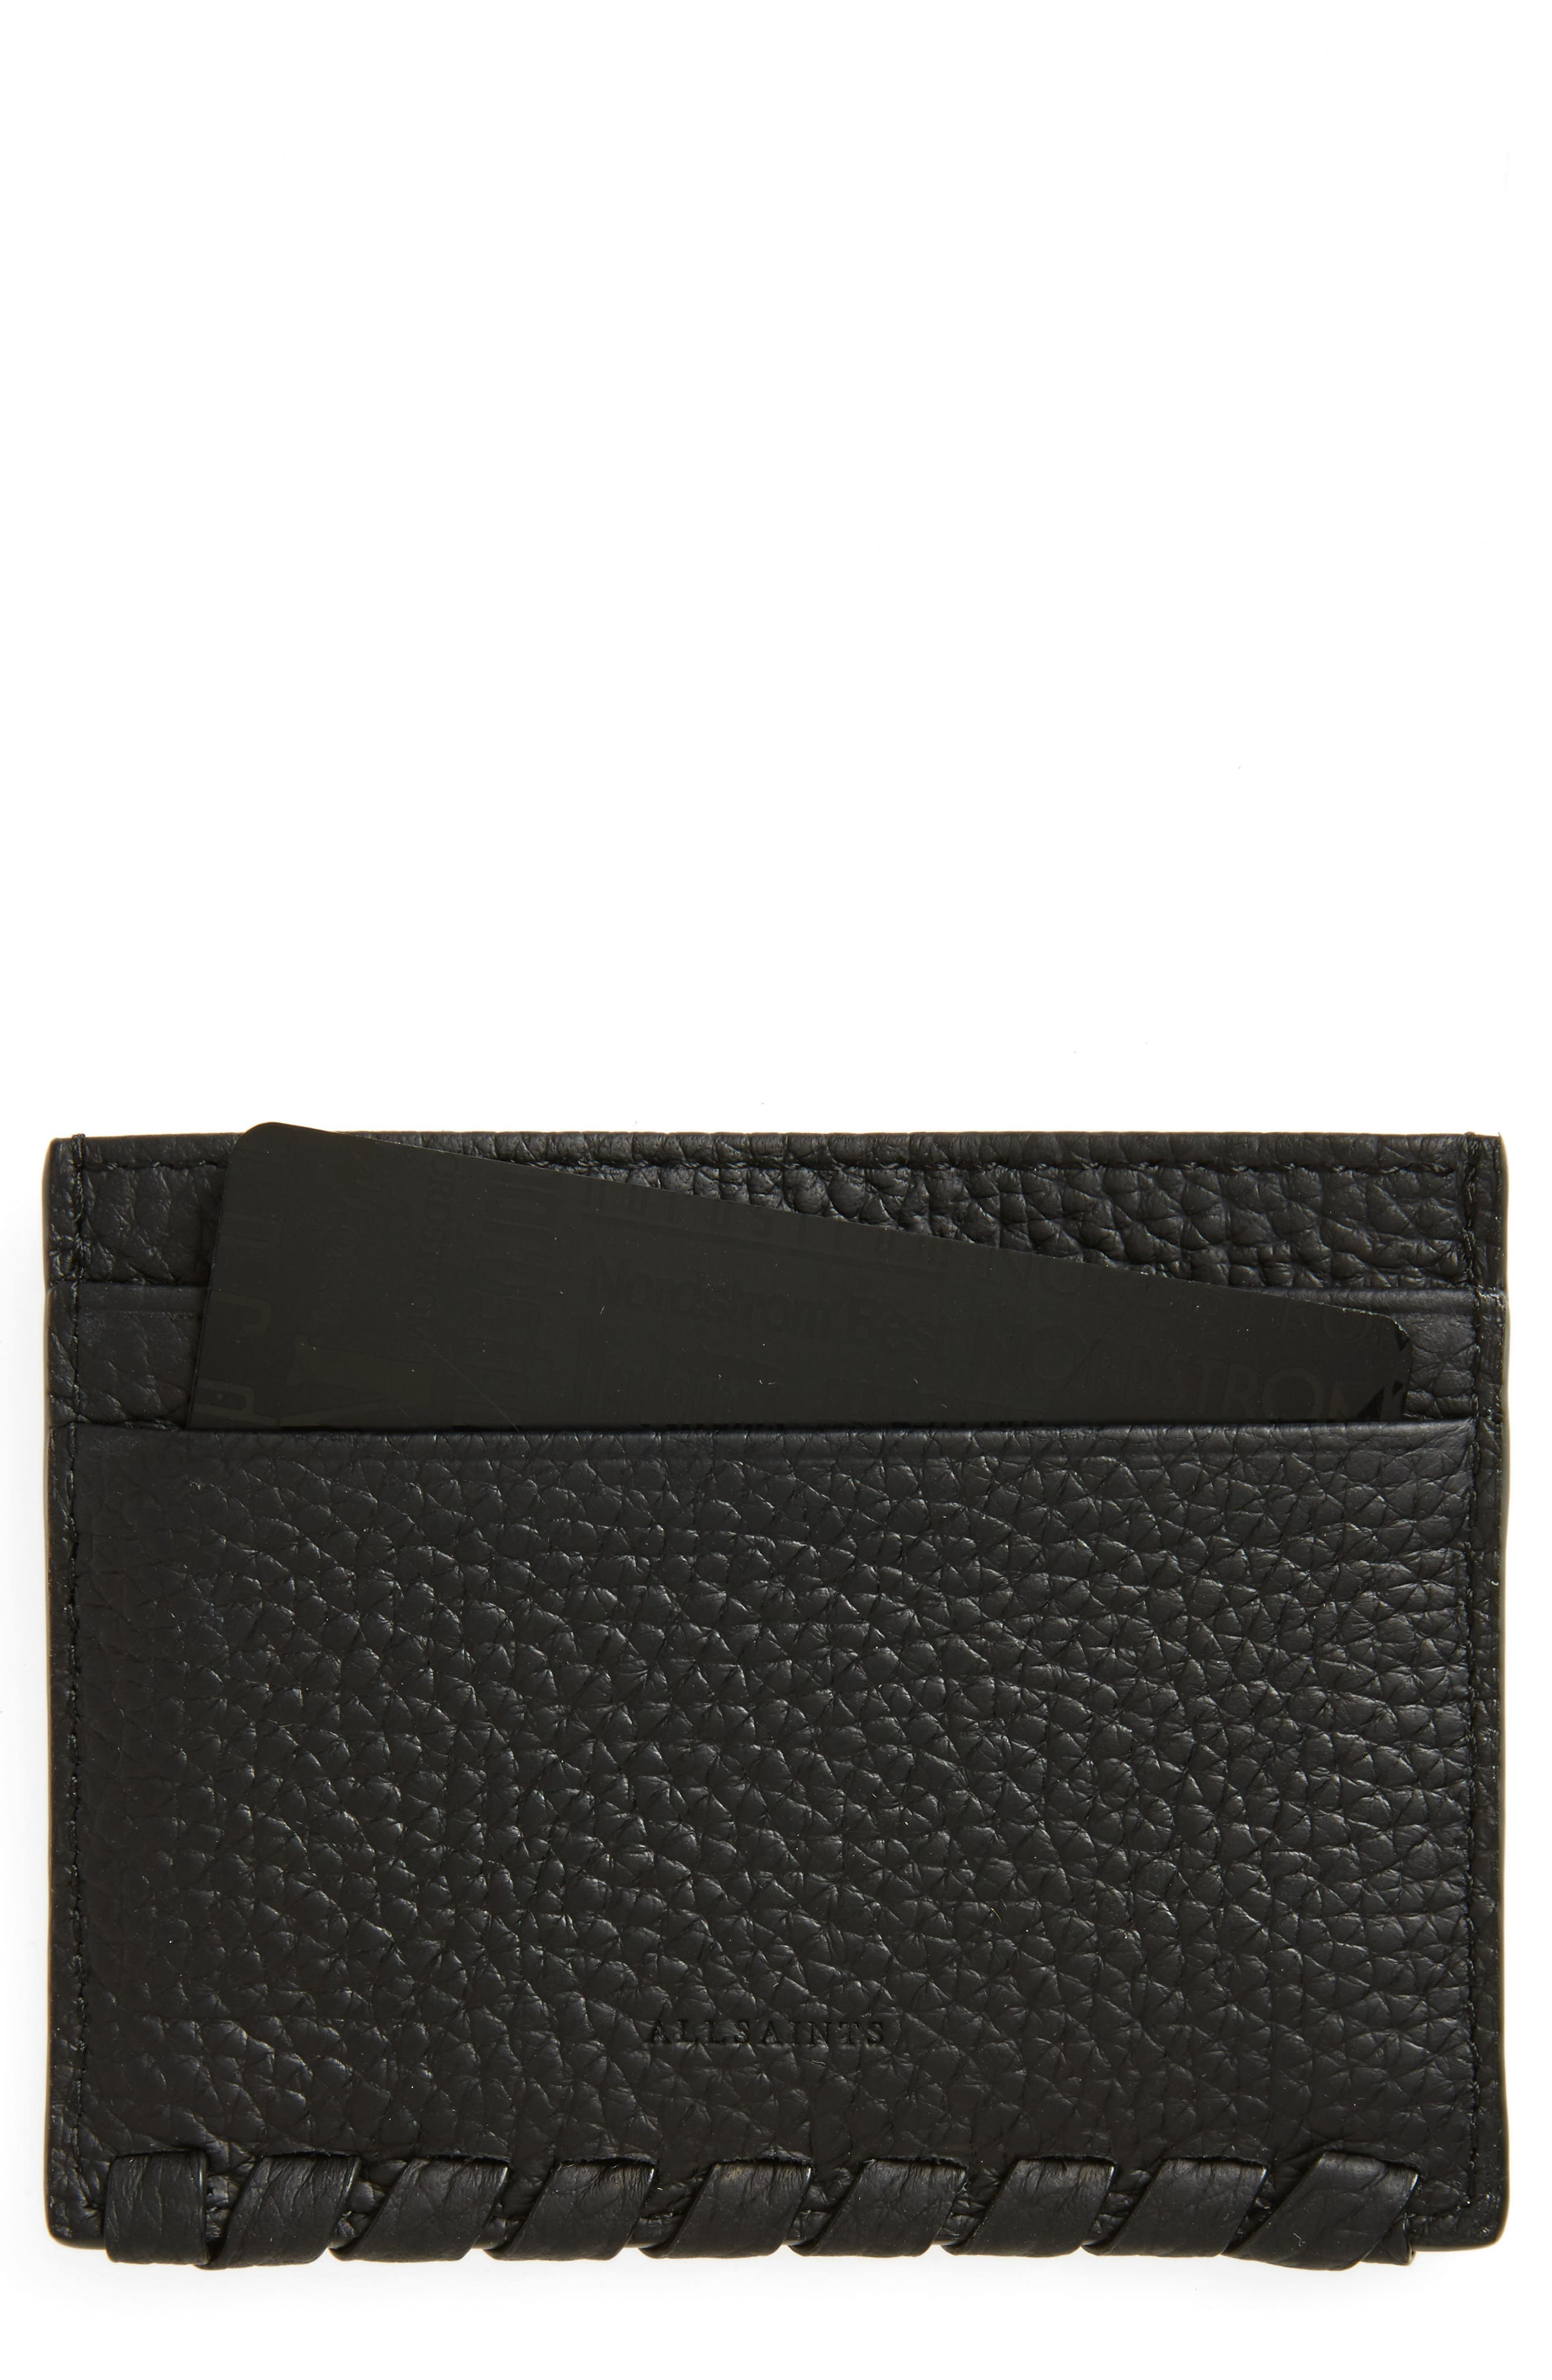 Alternate Image 1 Selected - ALLSAINTS Kita Pebbled Leather Card Case